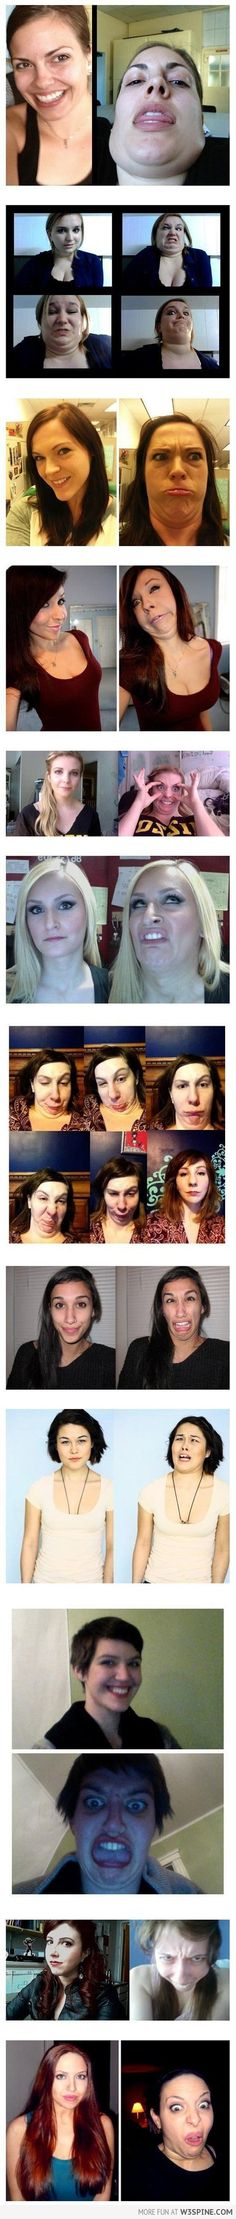 Girls And Ugly Faces! I seriously love these!  I started crying from laughter on the third from last.  My favorite!!!!